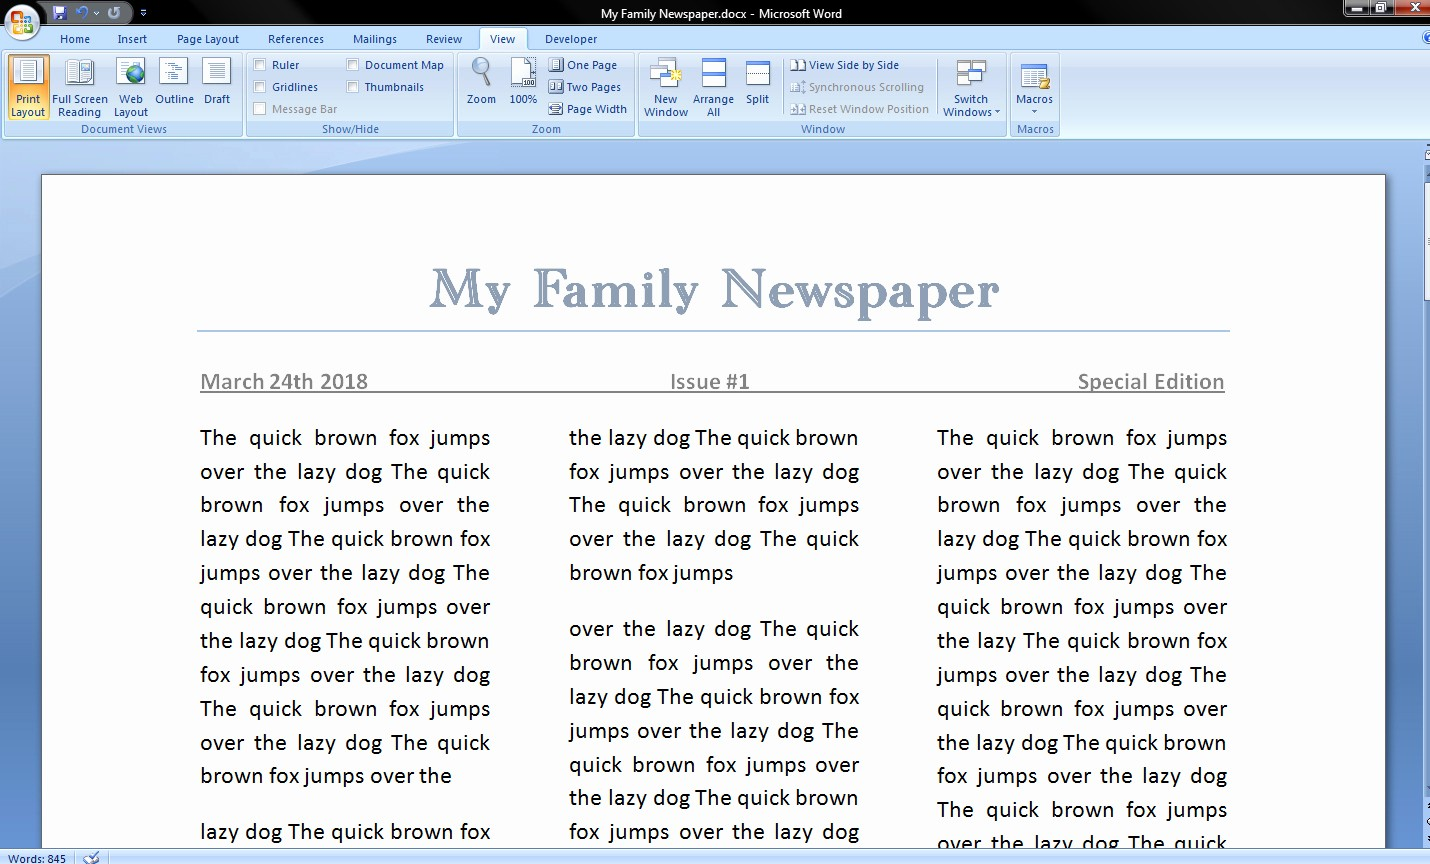 Microsoft Word Newspaper Article Template Elegant Ideas Collection How to Make A Newspaper Microsoft Word